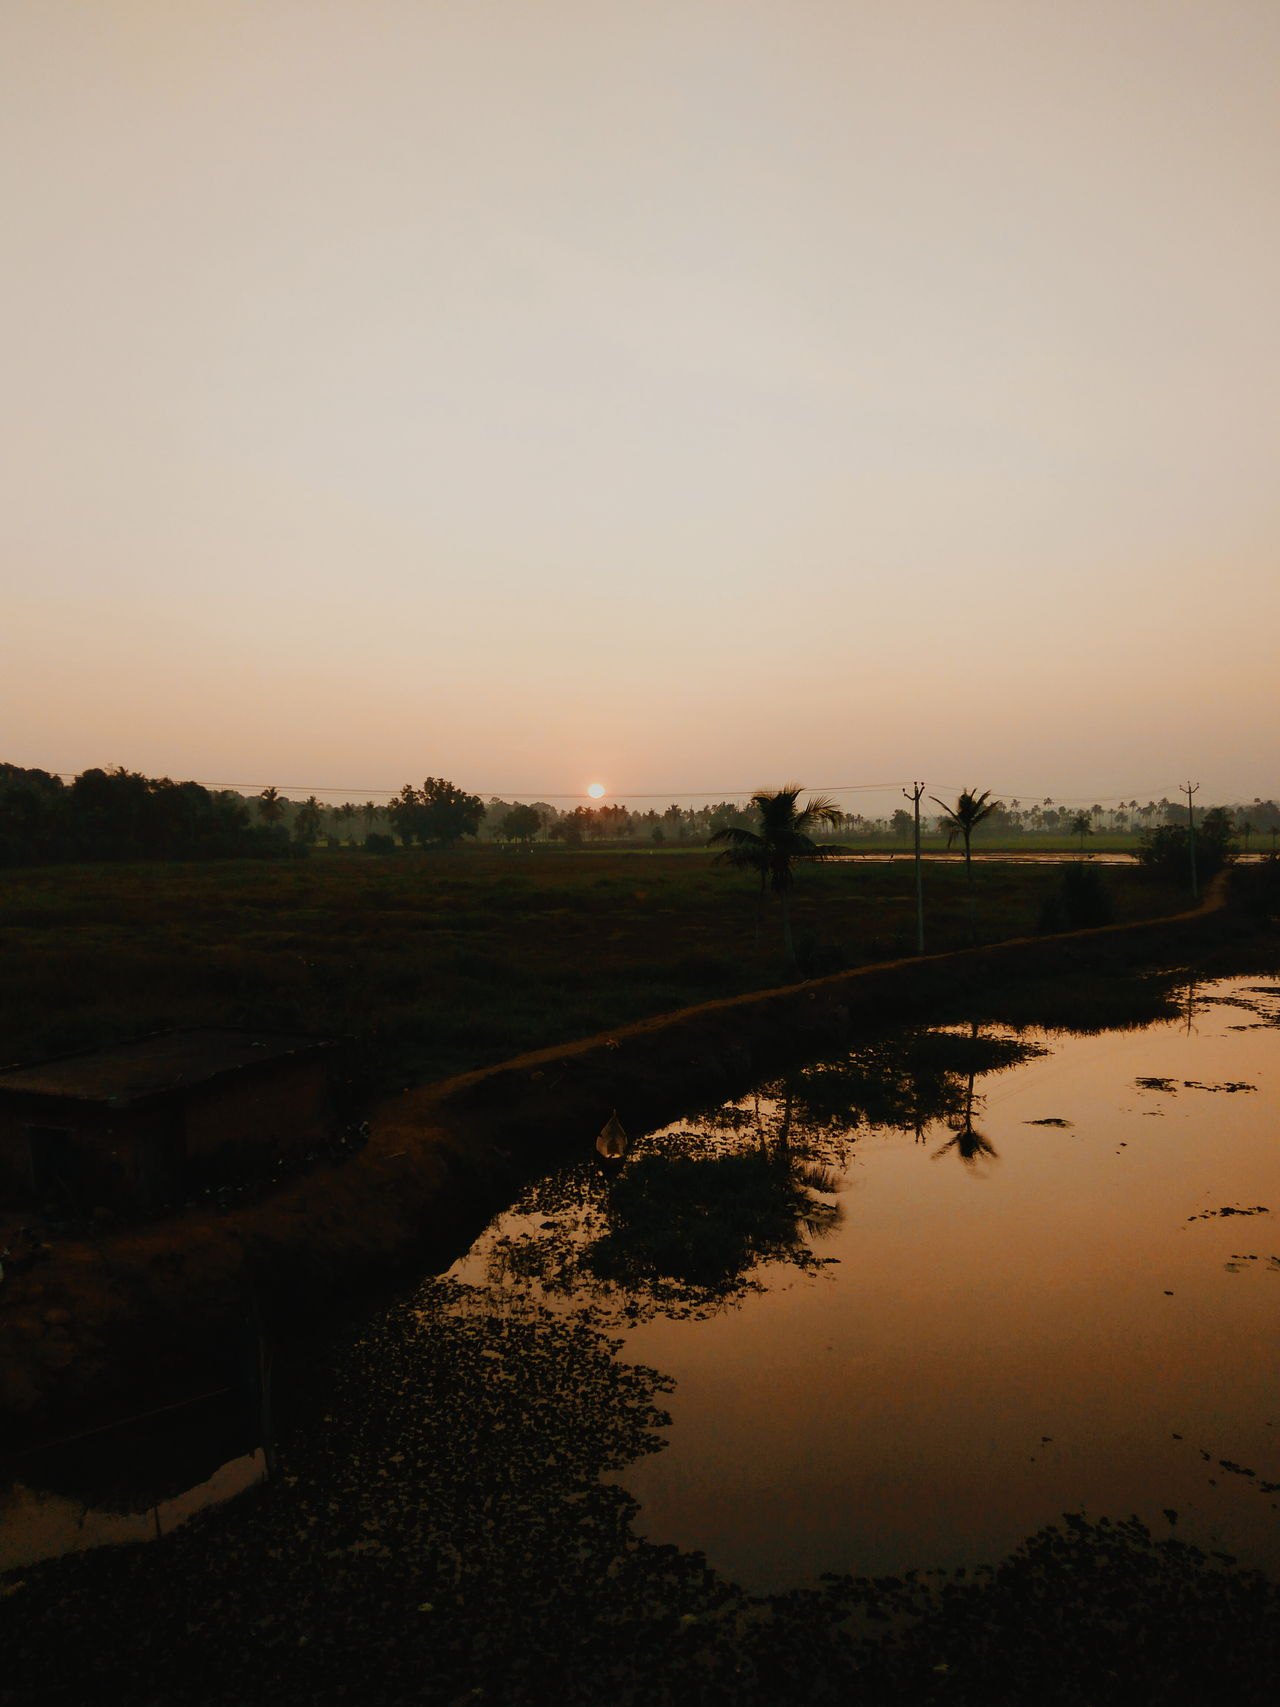 Sunset Dawn Water Reflection Sky Wet Landscape Silhouette Nature Lake Tree Outdoors Arrival Rice Paddy Beauty In Nature Scenics No People Day